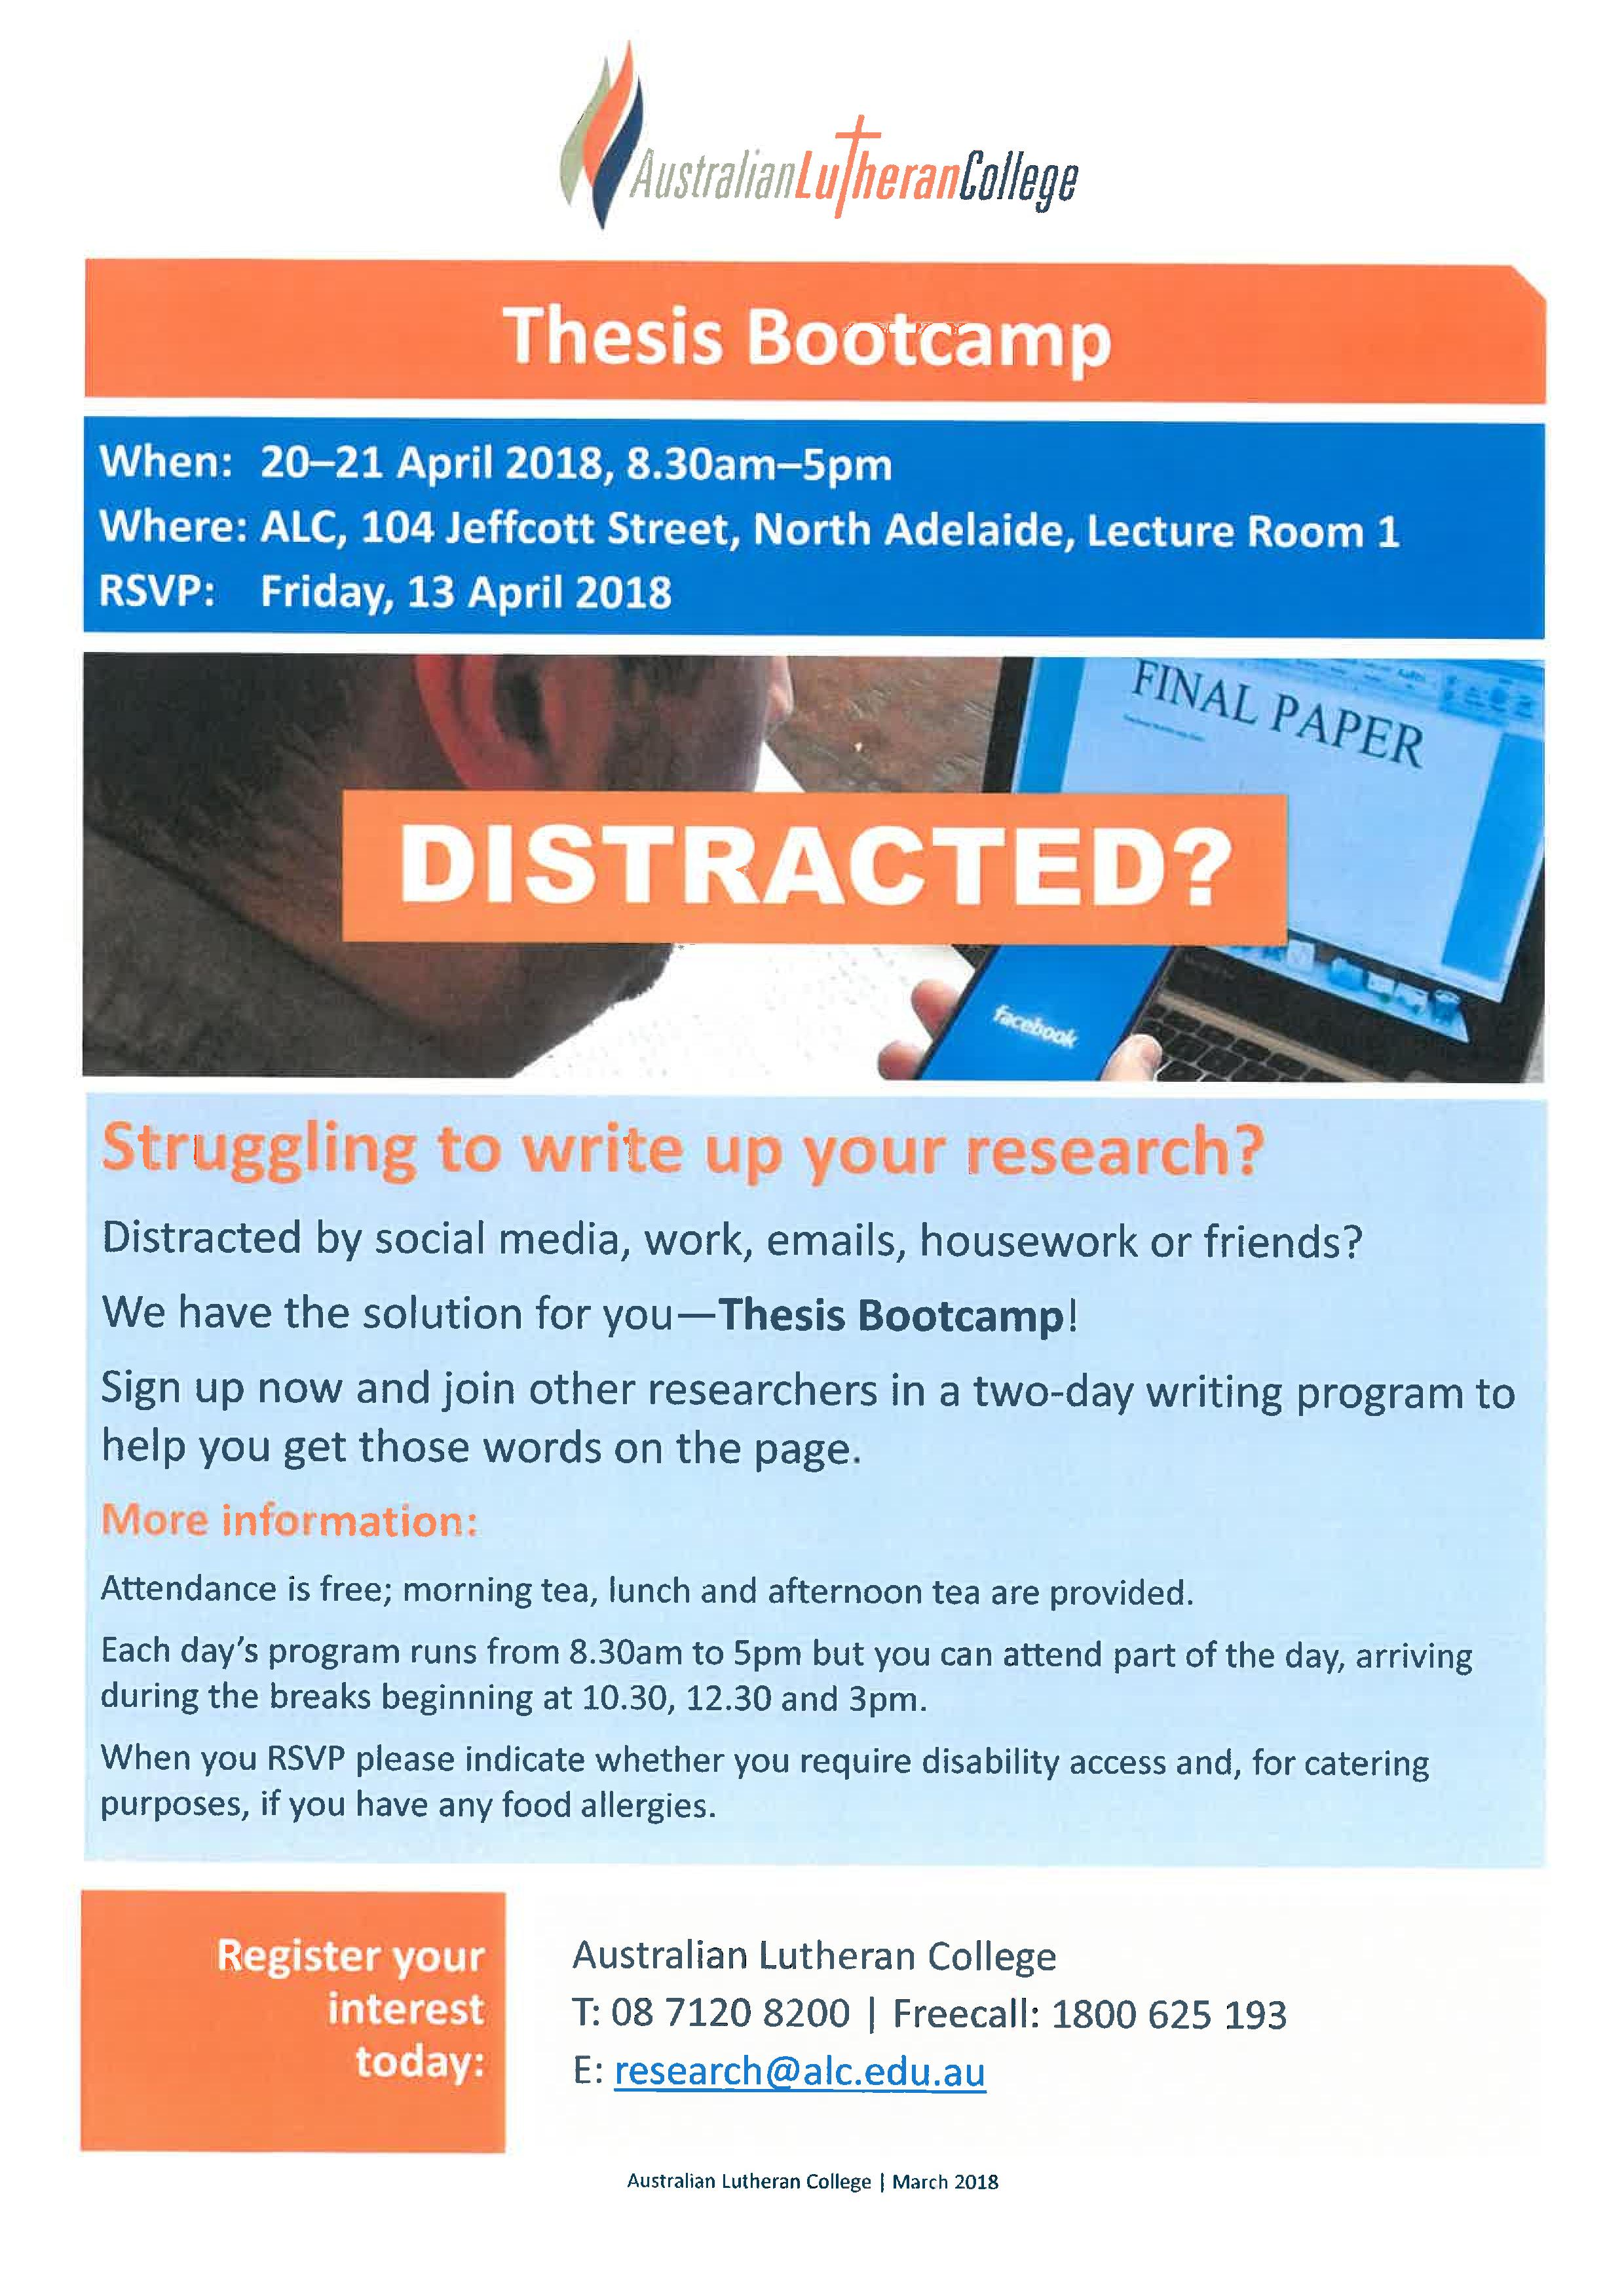 Dissertation bootcamp